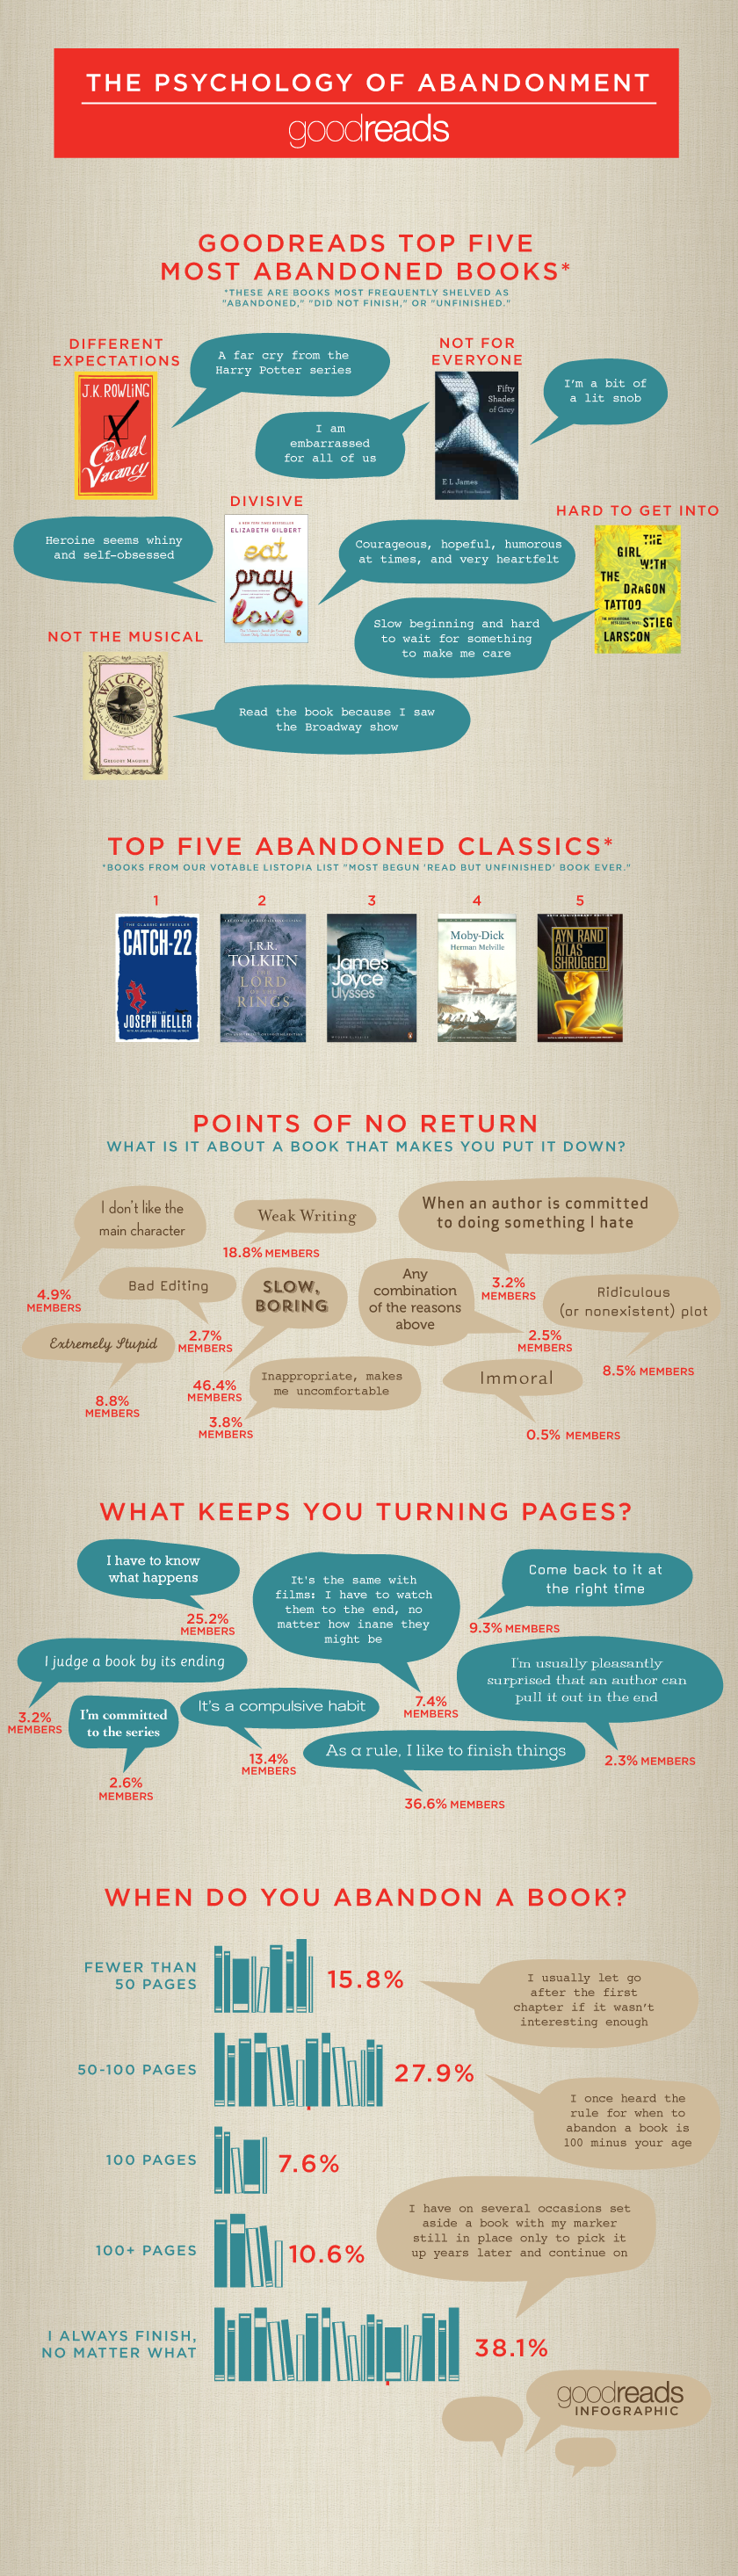 Infographic by Goodreads on book abandonment